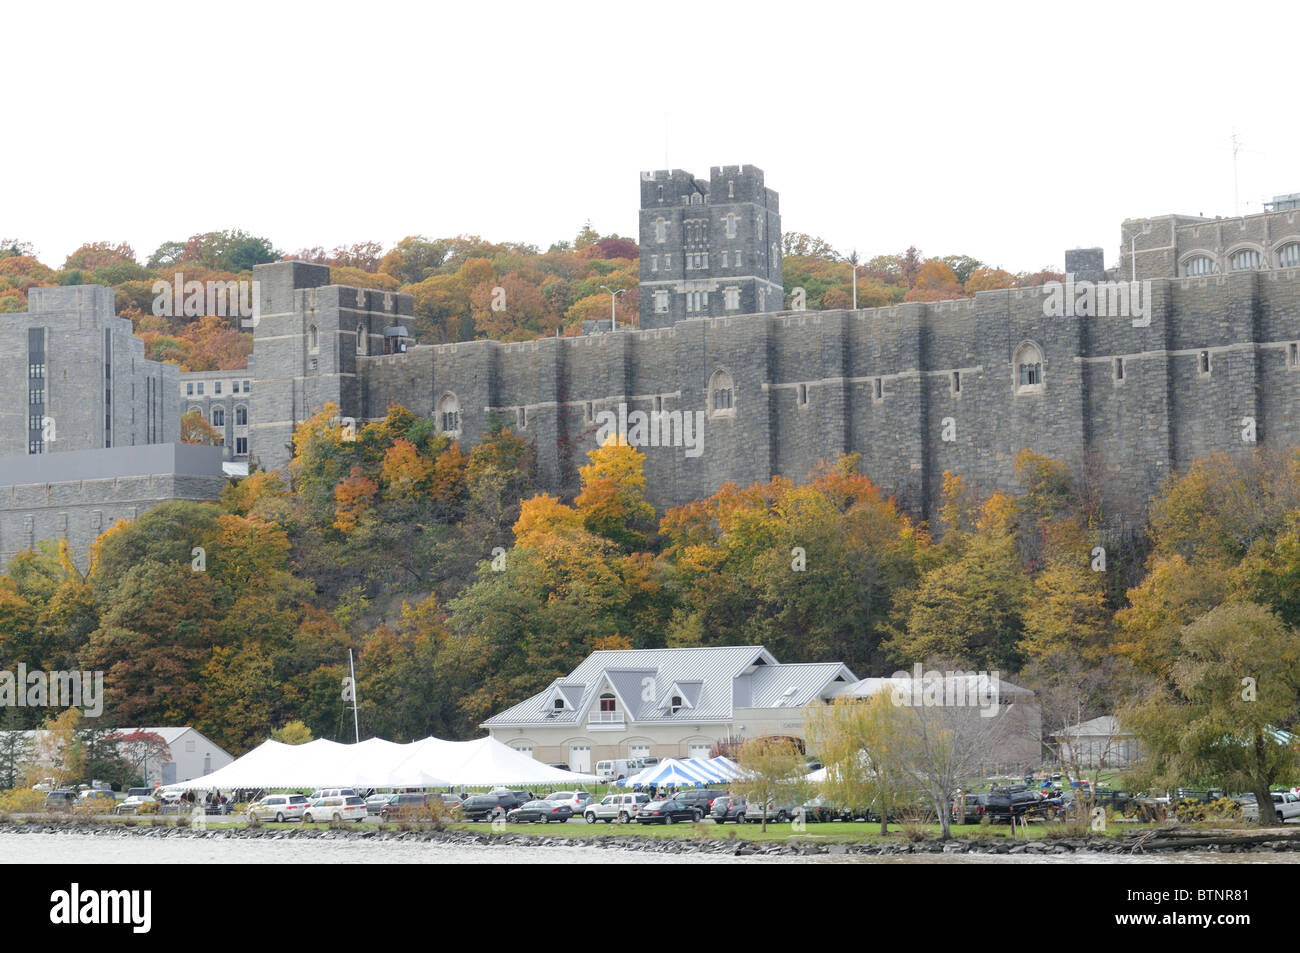 The United States Military Academy at West Point, founded in 1802 ...